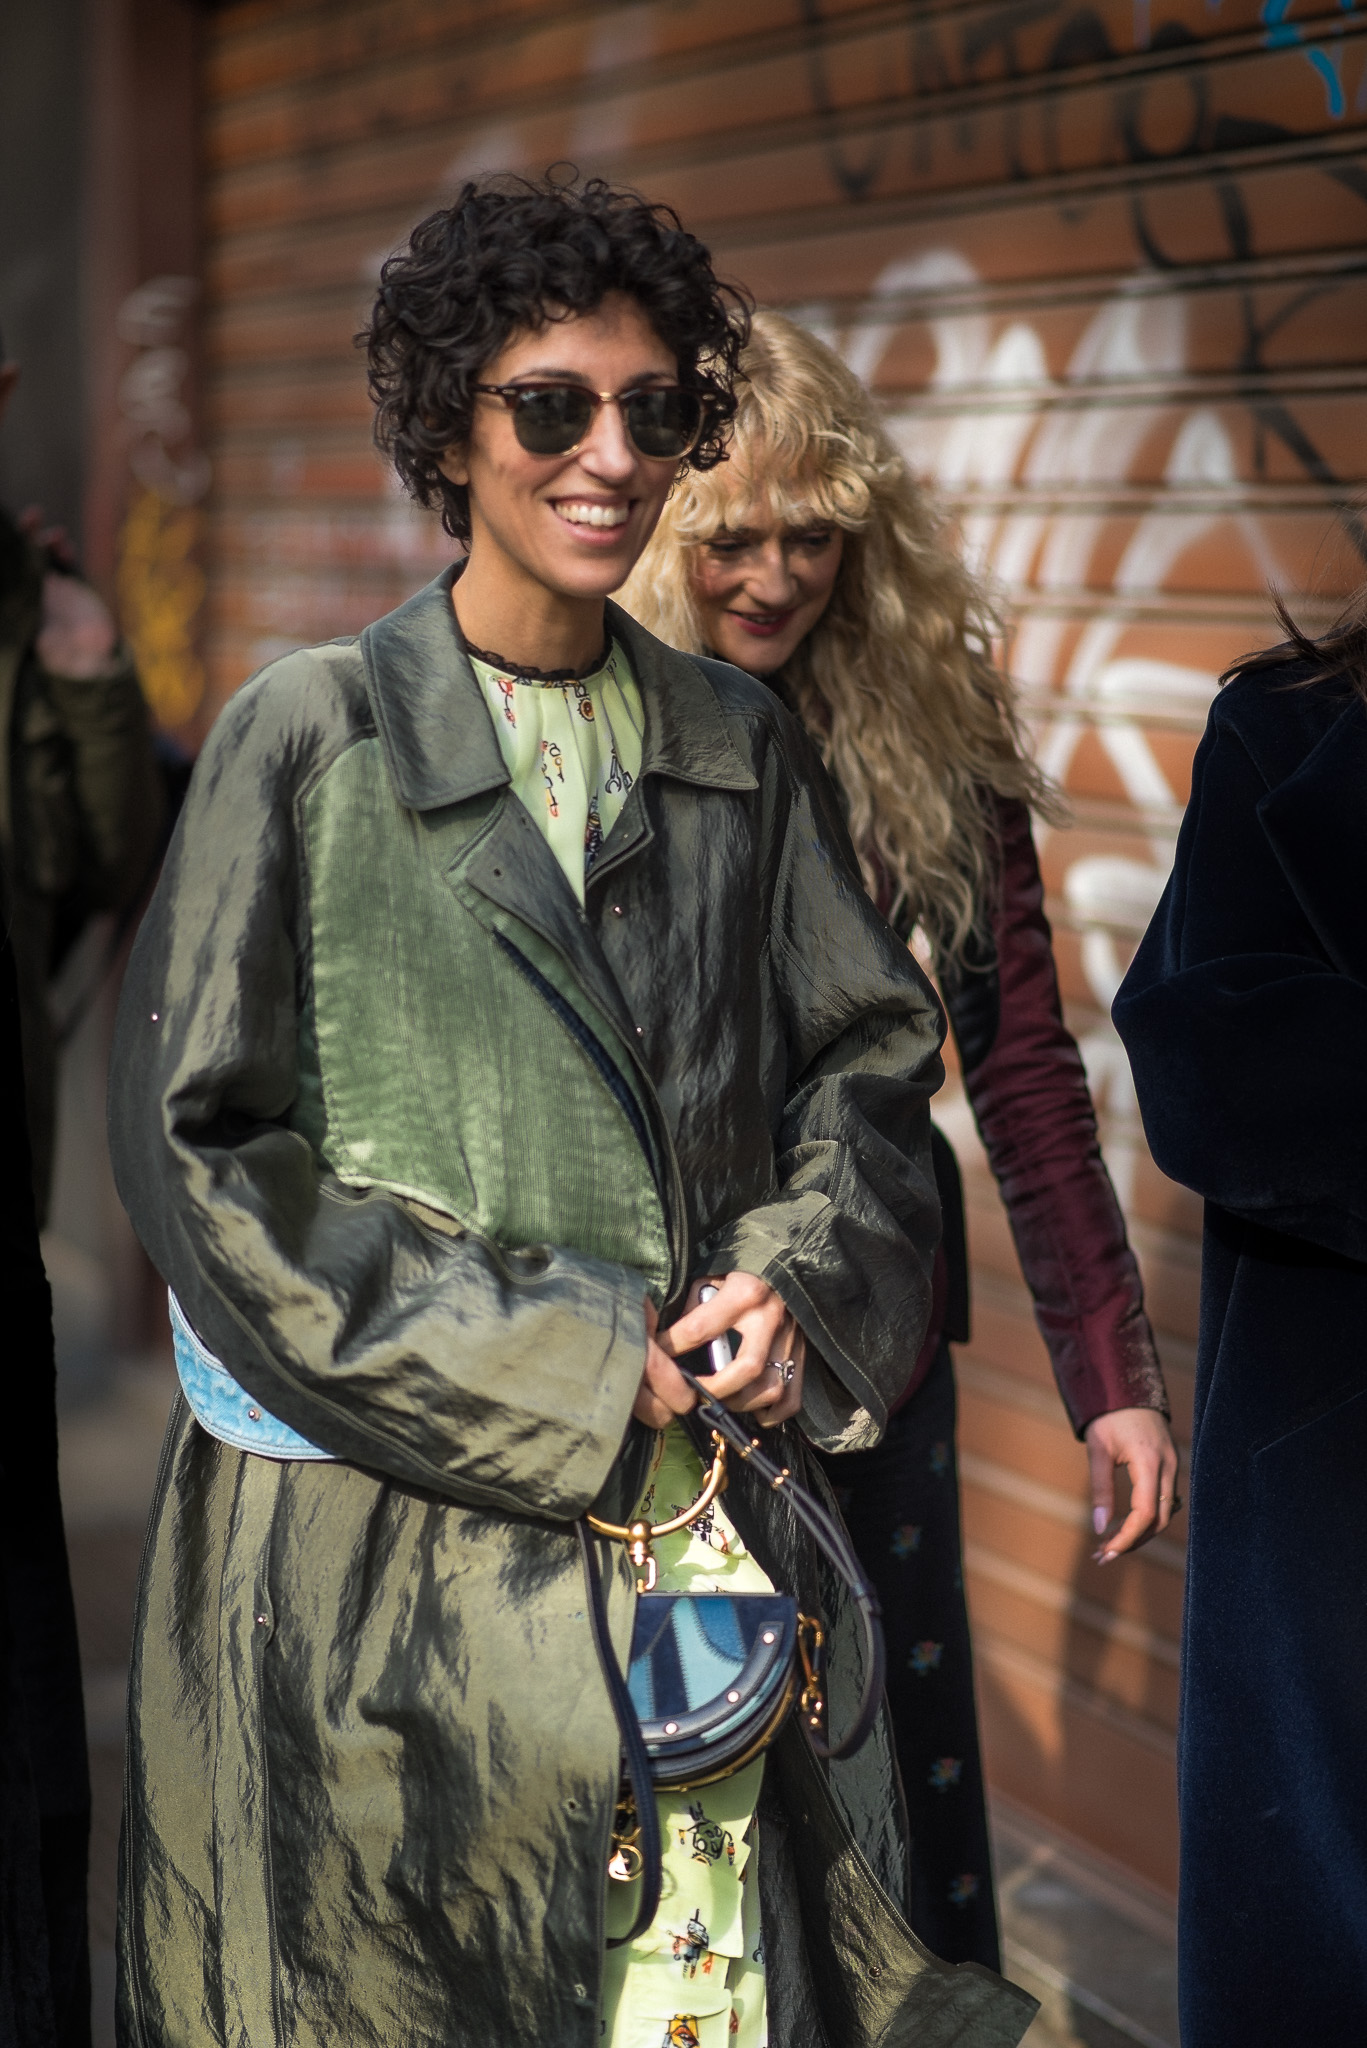 Yasmin Sewell_Street Style_Dolce & Gabbana_Milan Fashion Week_February 26th 2017_Photography Annika Lagerqvist_www.annikasomething.com